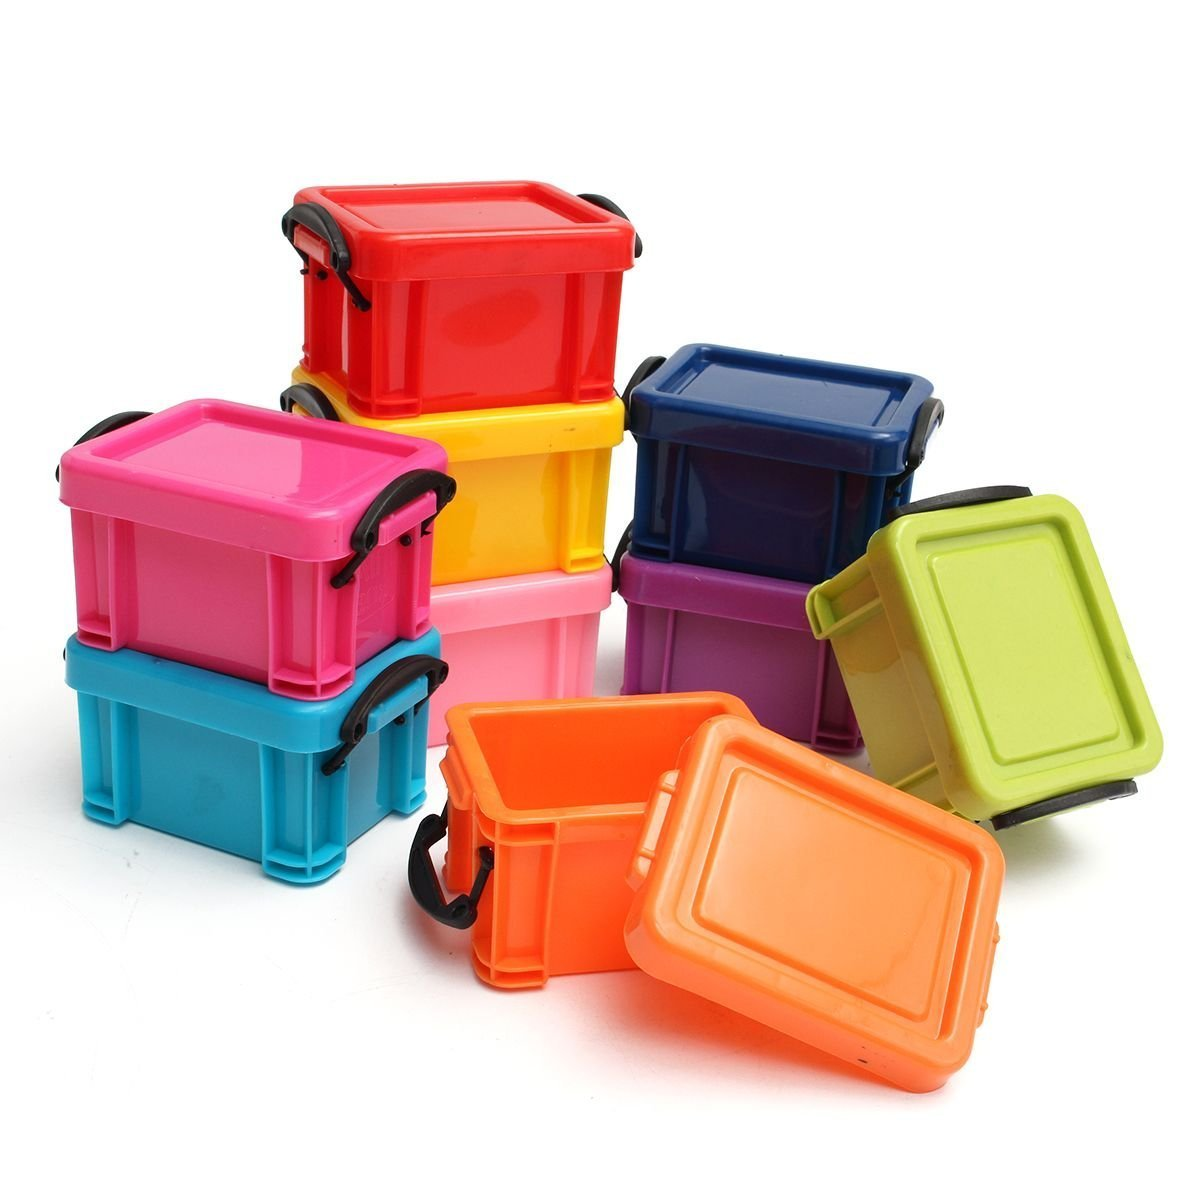 Kurtzy 9 Pc Small Plastic Storage Box Container with Clip On Lids - Stackable Tidy Desk  sc 1 st  Amazon.com & Best Rated in Storage Crates u0026 Helpful Customer Reviews - Amazon.com